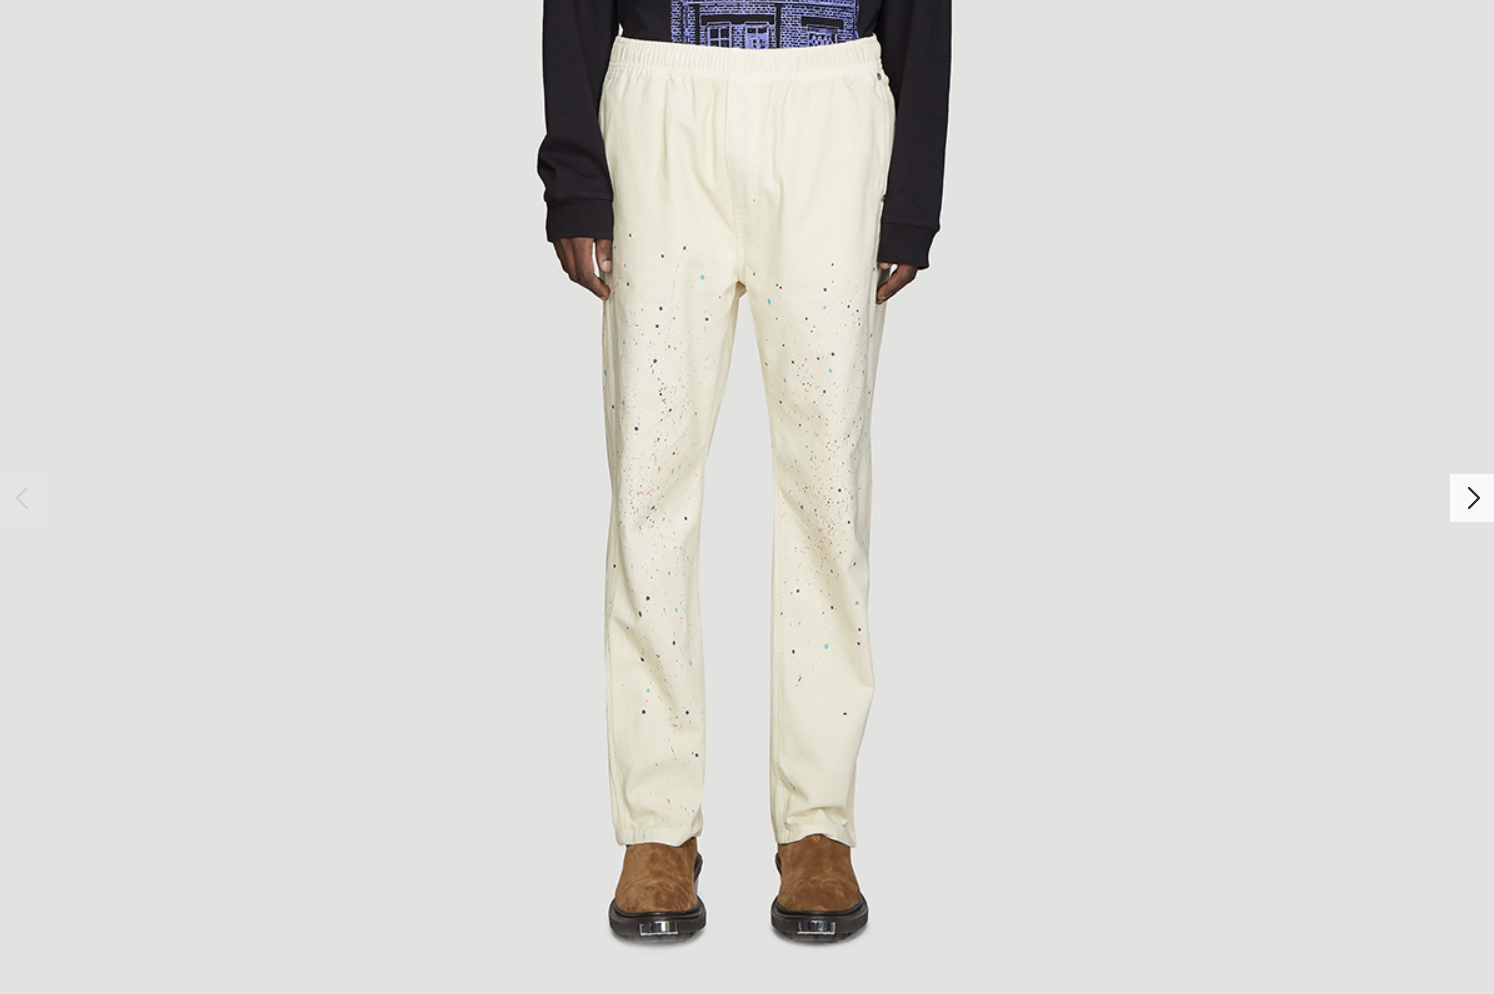 VYNER ARTICLES Elasticated Spray Paint Pants in Cream